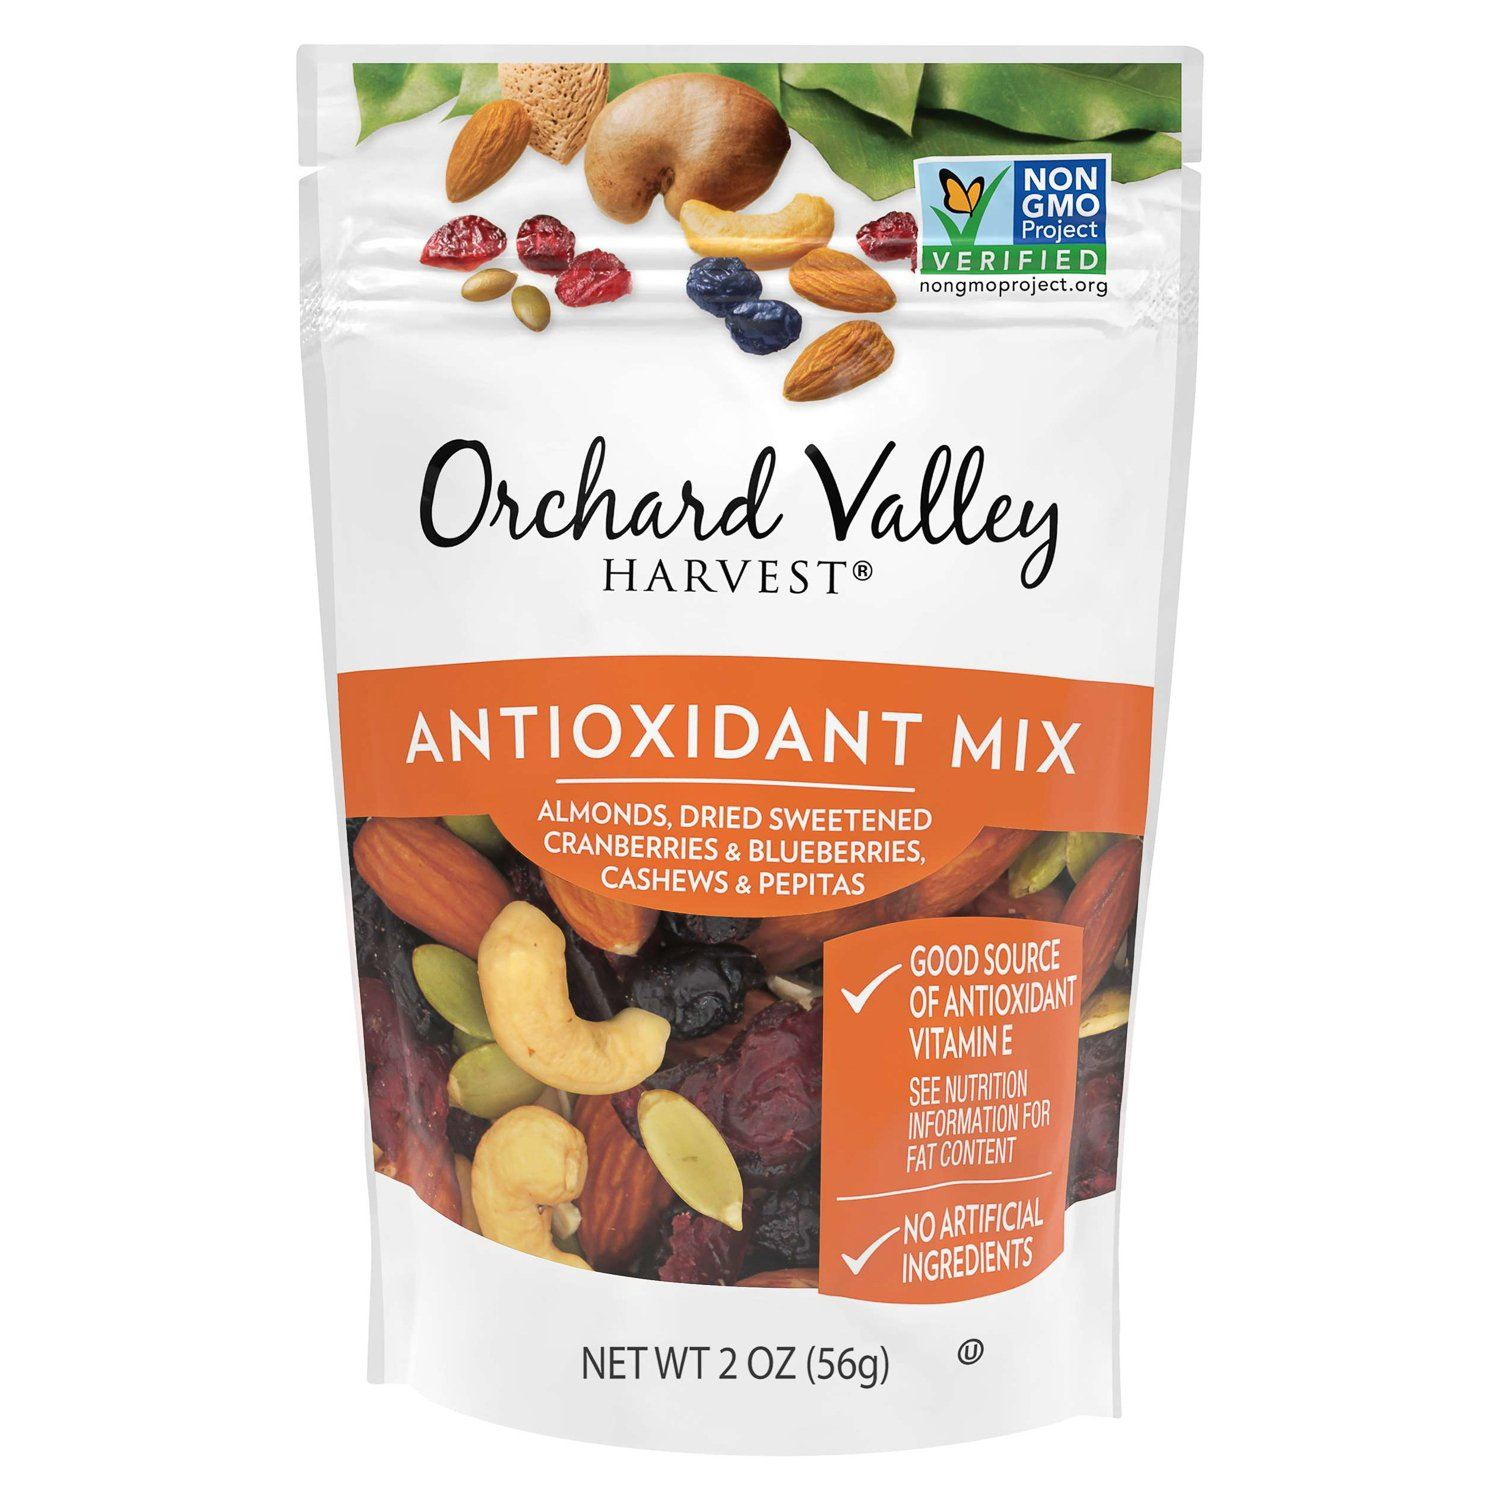 Orchard Valley Harvest Antioxidant Mix Orchard Valley Harvest Antioxidant Mix 2 Ounce